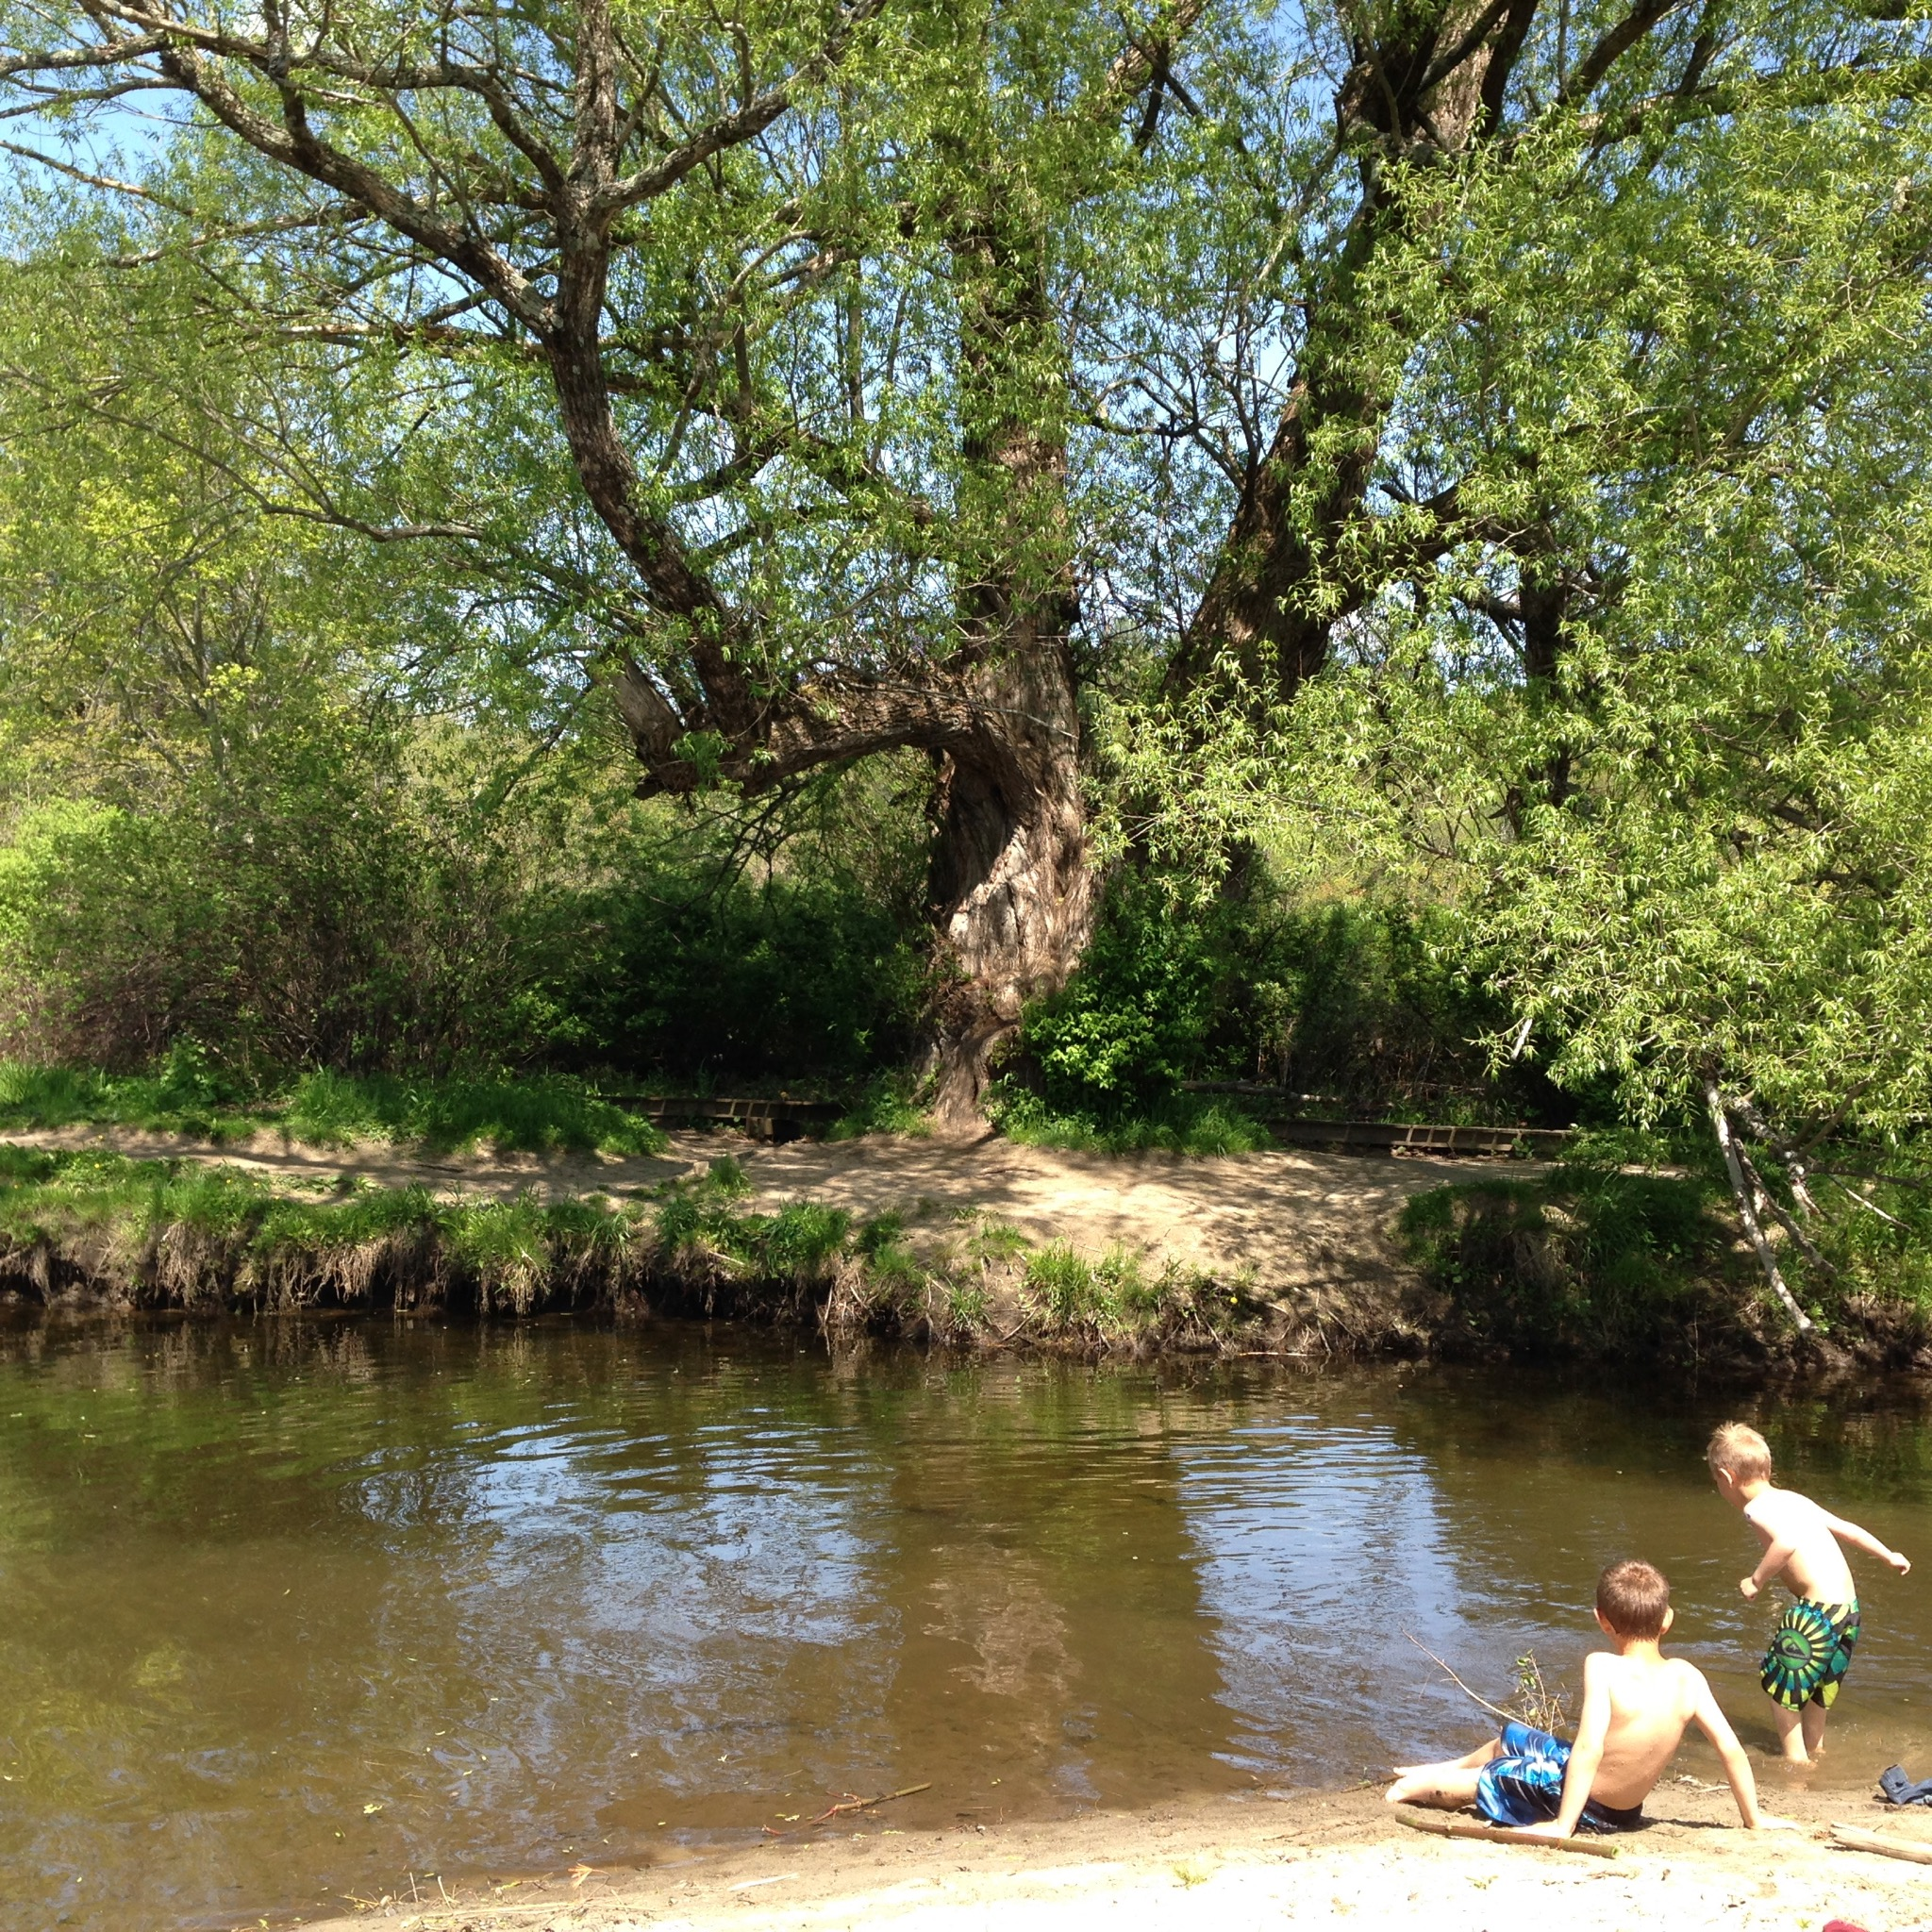 The perfect swimming holesurounded by massive weeping willows.